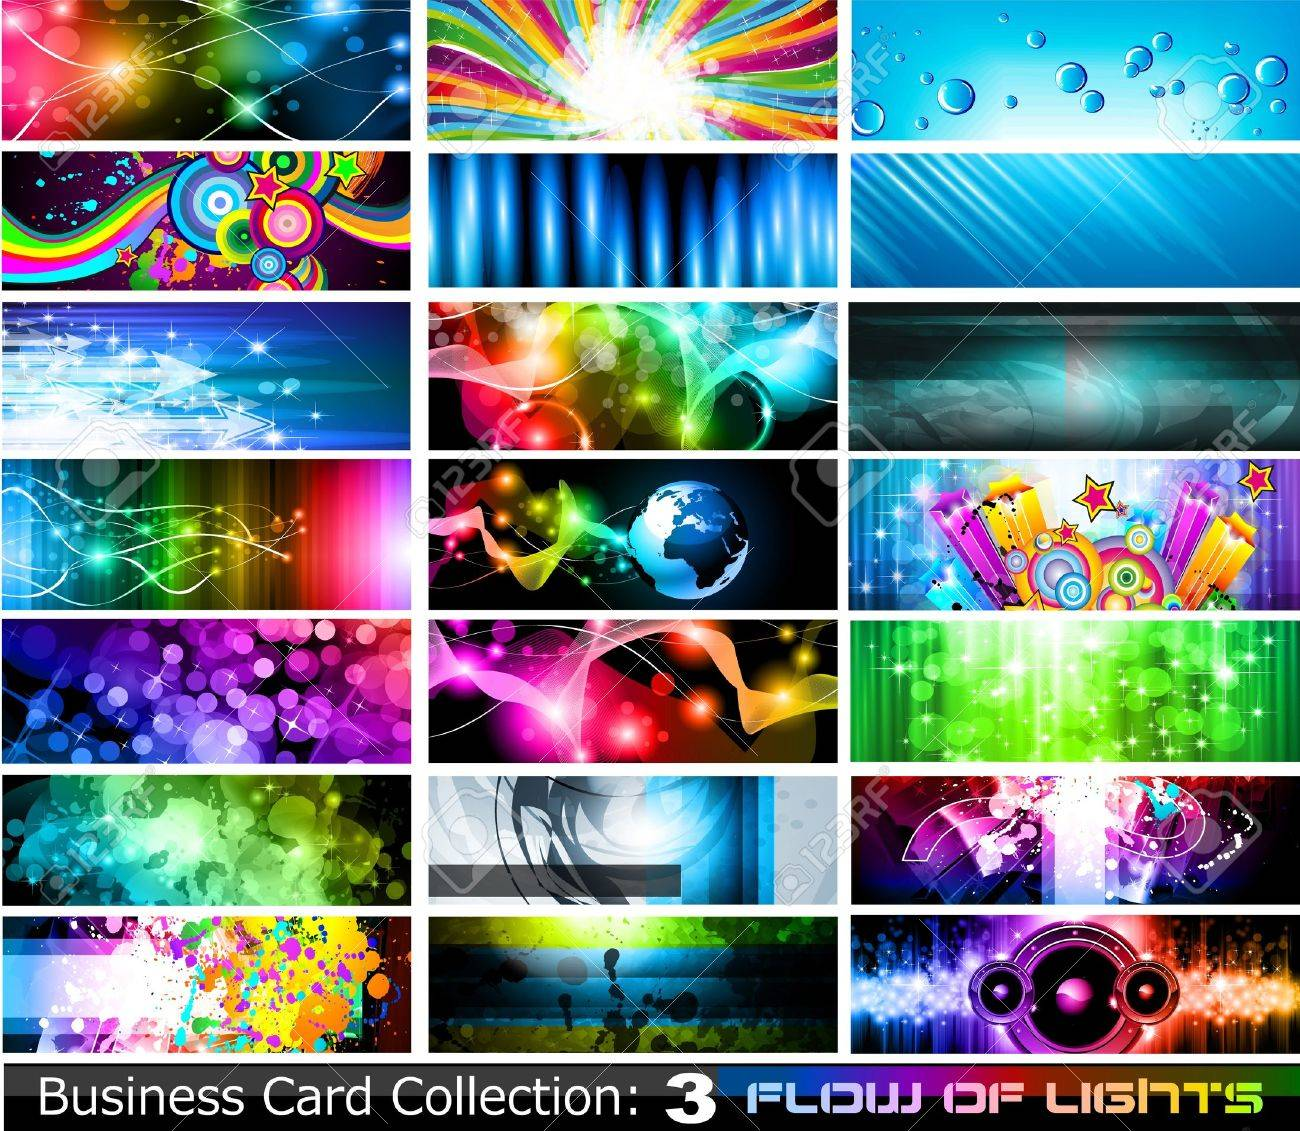 Abstract Business Card Collection: Flow of lights - Set 3 Stock Vector - 9595287